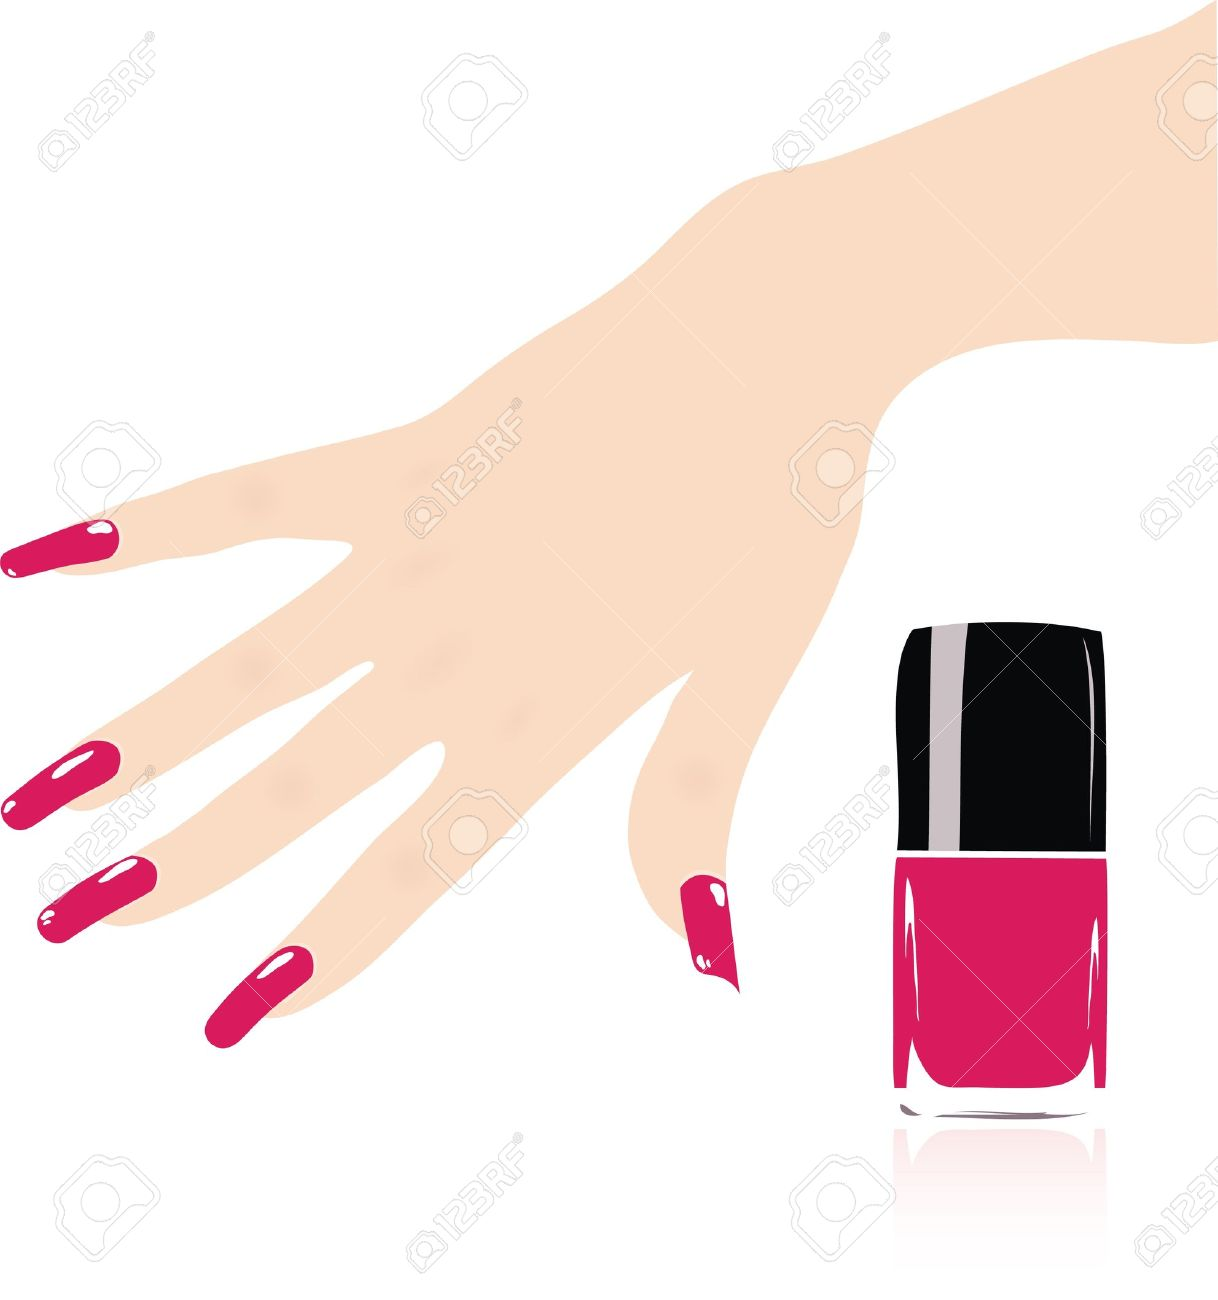 Fingernail free download best. Nails clipart nail care